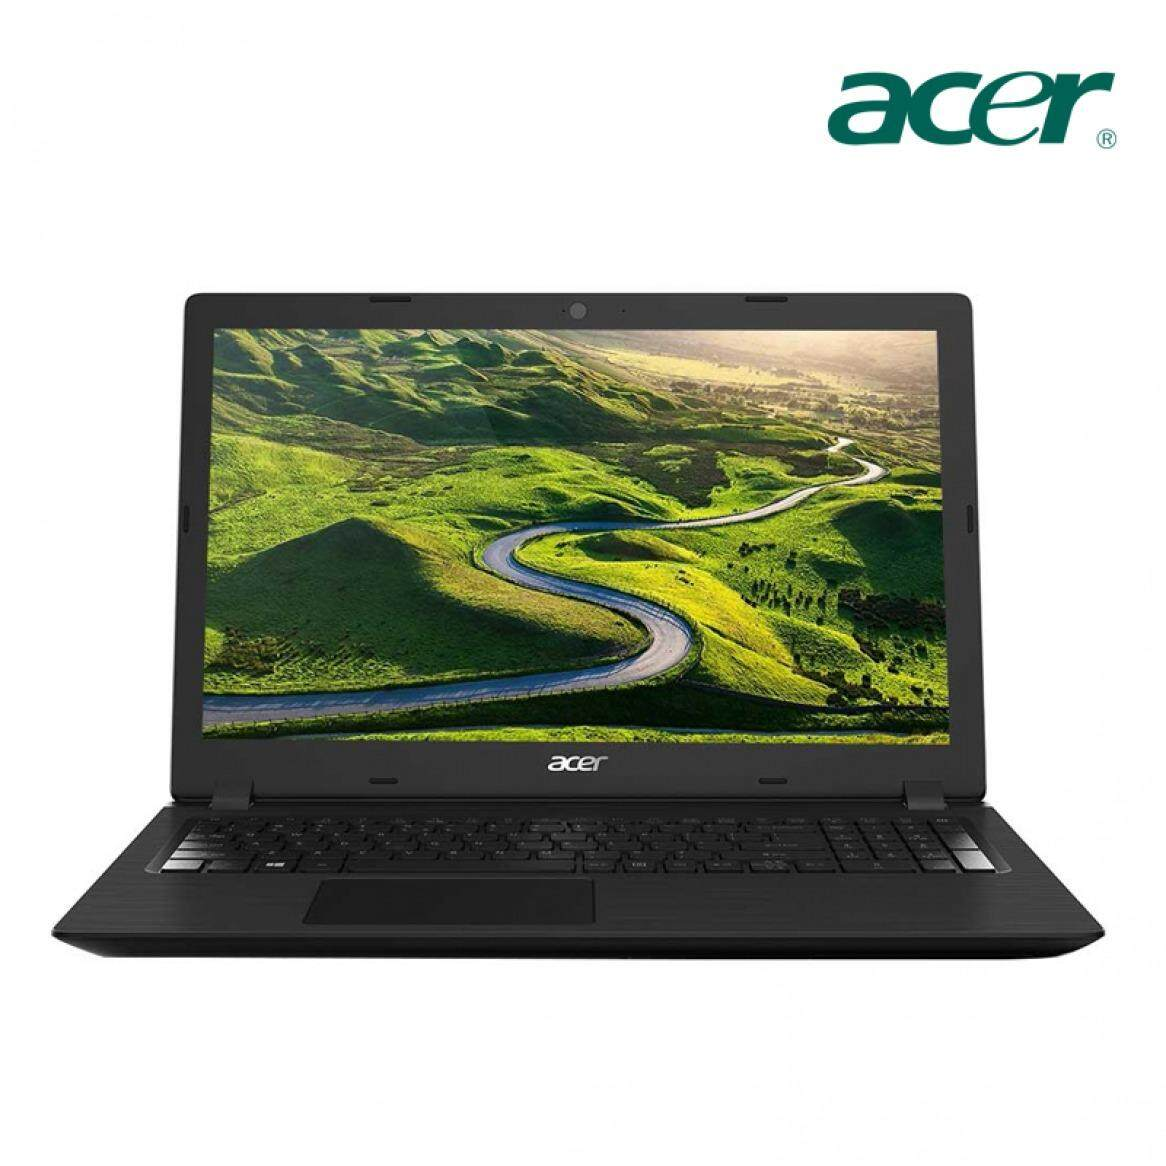 ขาย Acer Notebook Aspire 3 A315 21 61D1 Nx Gnvst 008 Amd A6 9220 4Gb 1Tb Integrated 15 6 Inch Hd Linux Black Acer เป็นต้นฉบับ